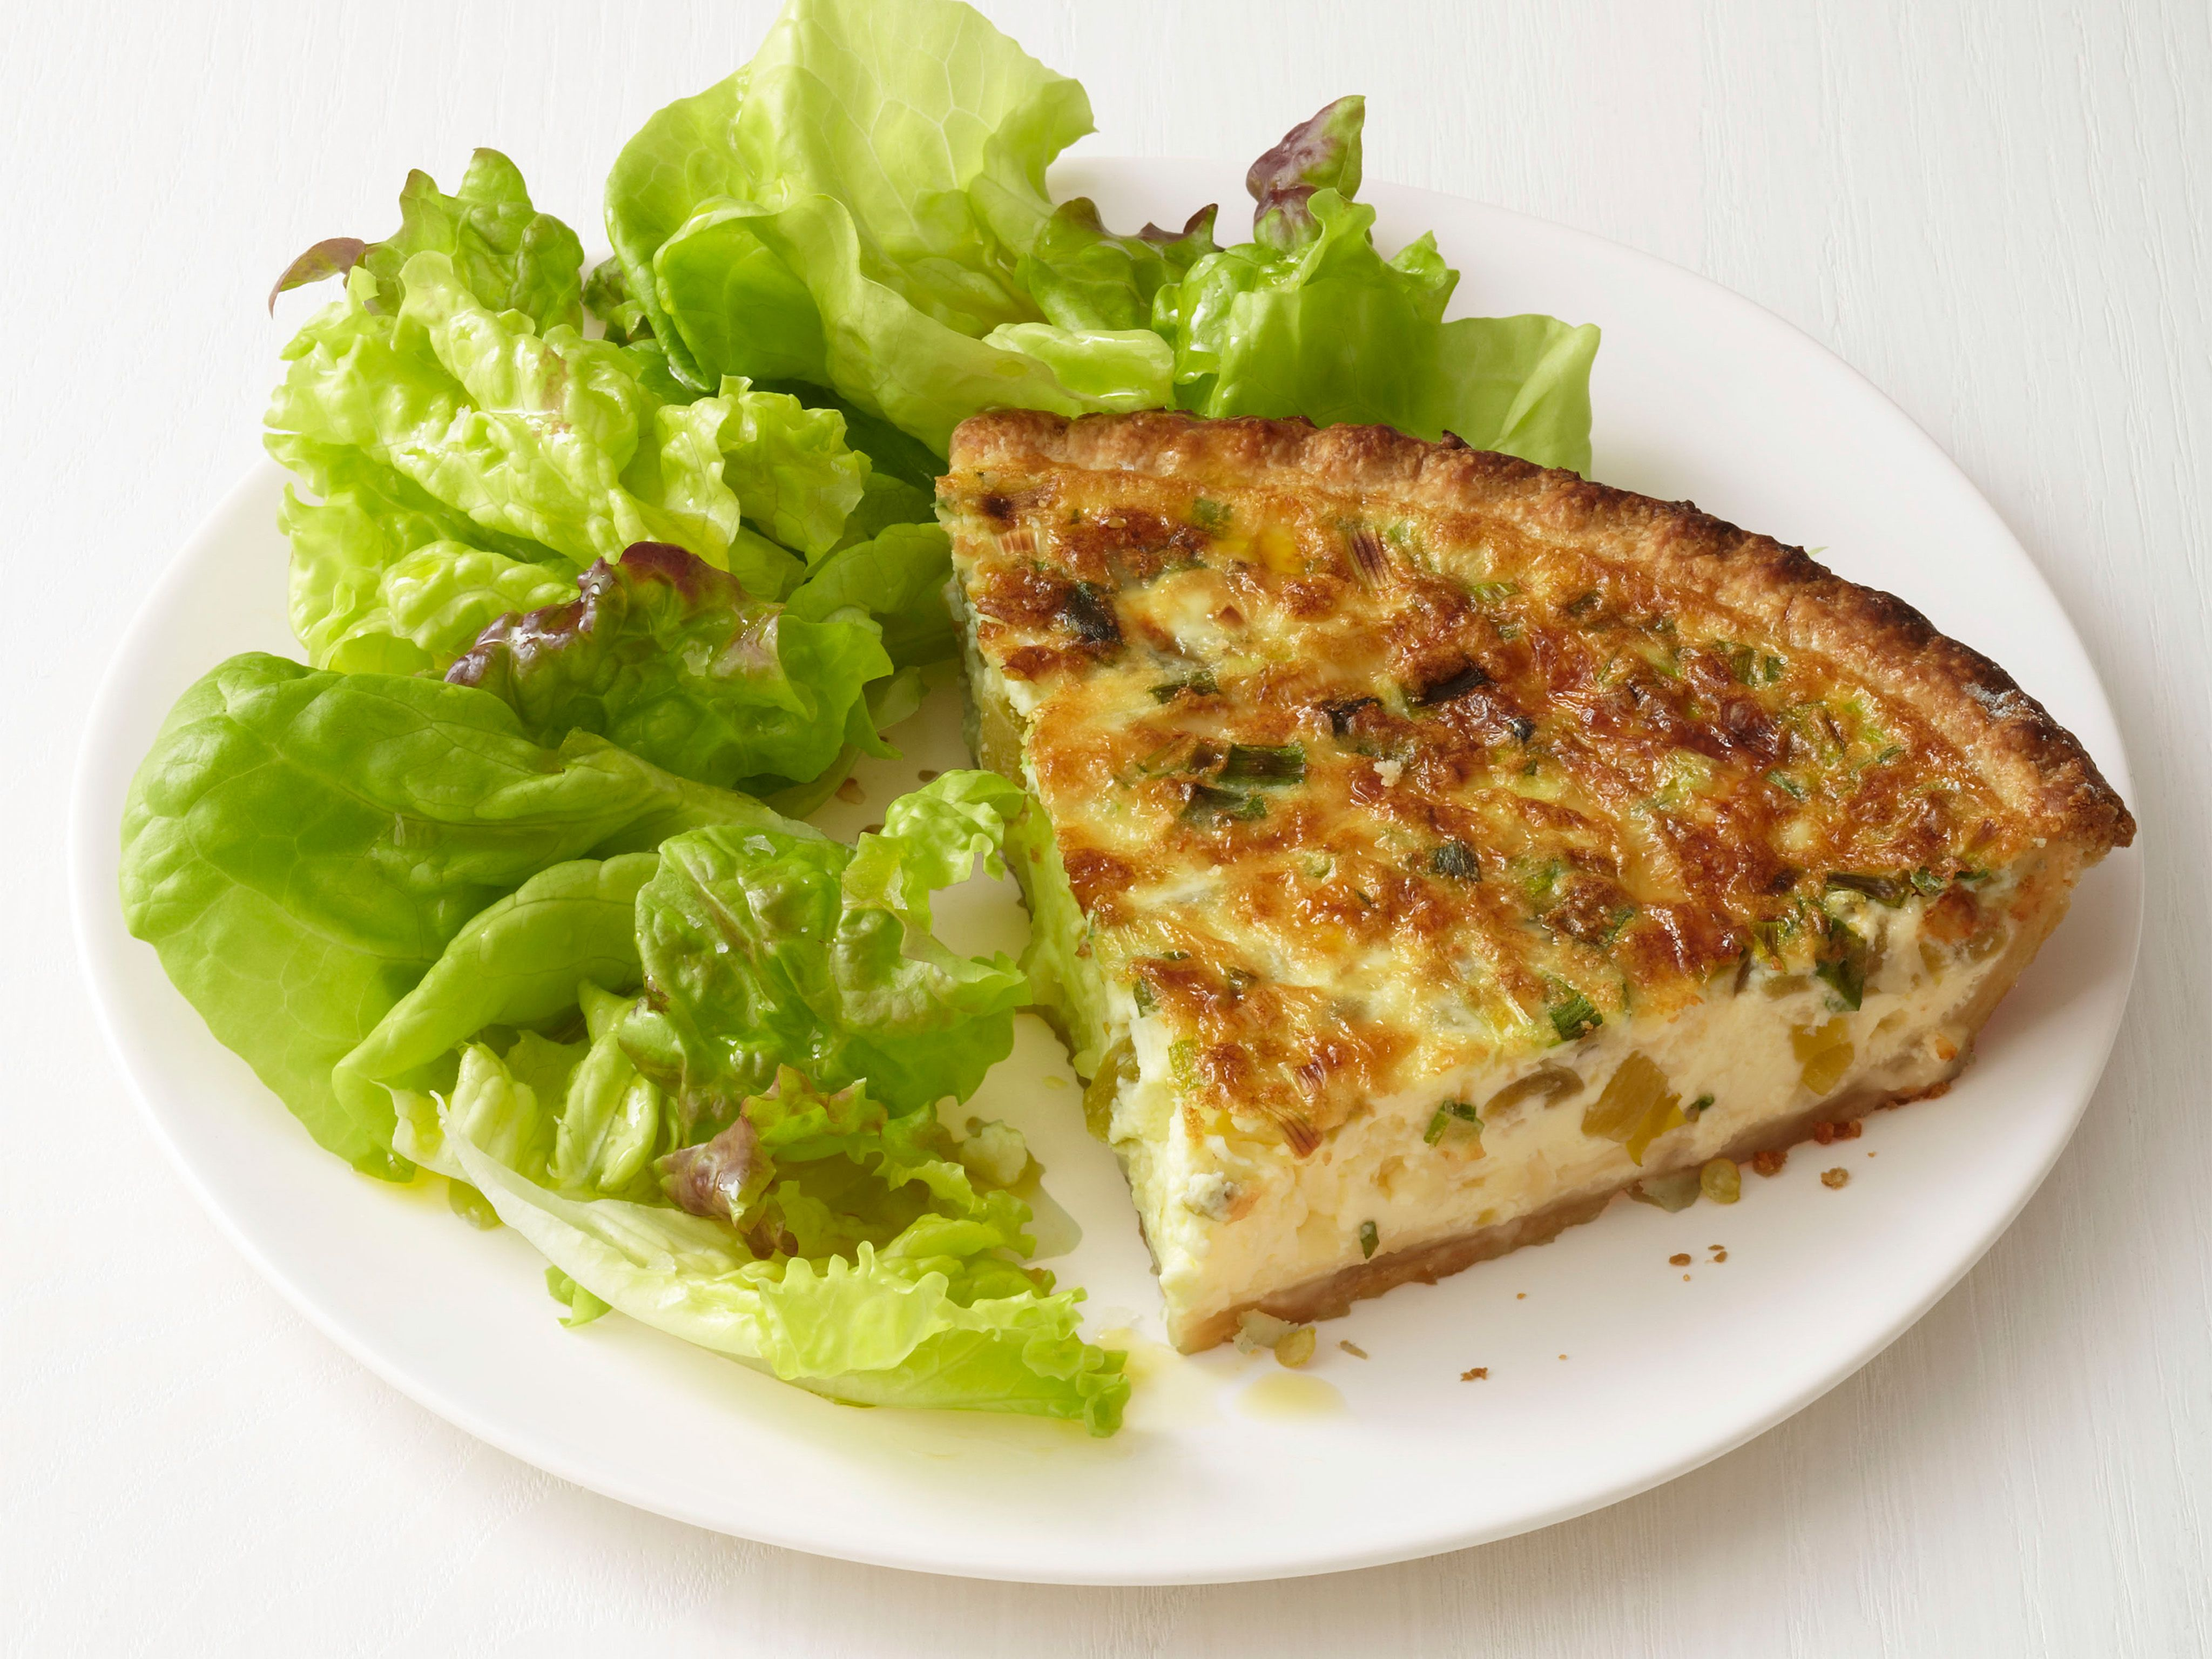 Green chile quiche recipe quiche recipes quiches and food forumfinder Gallery